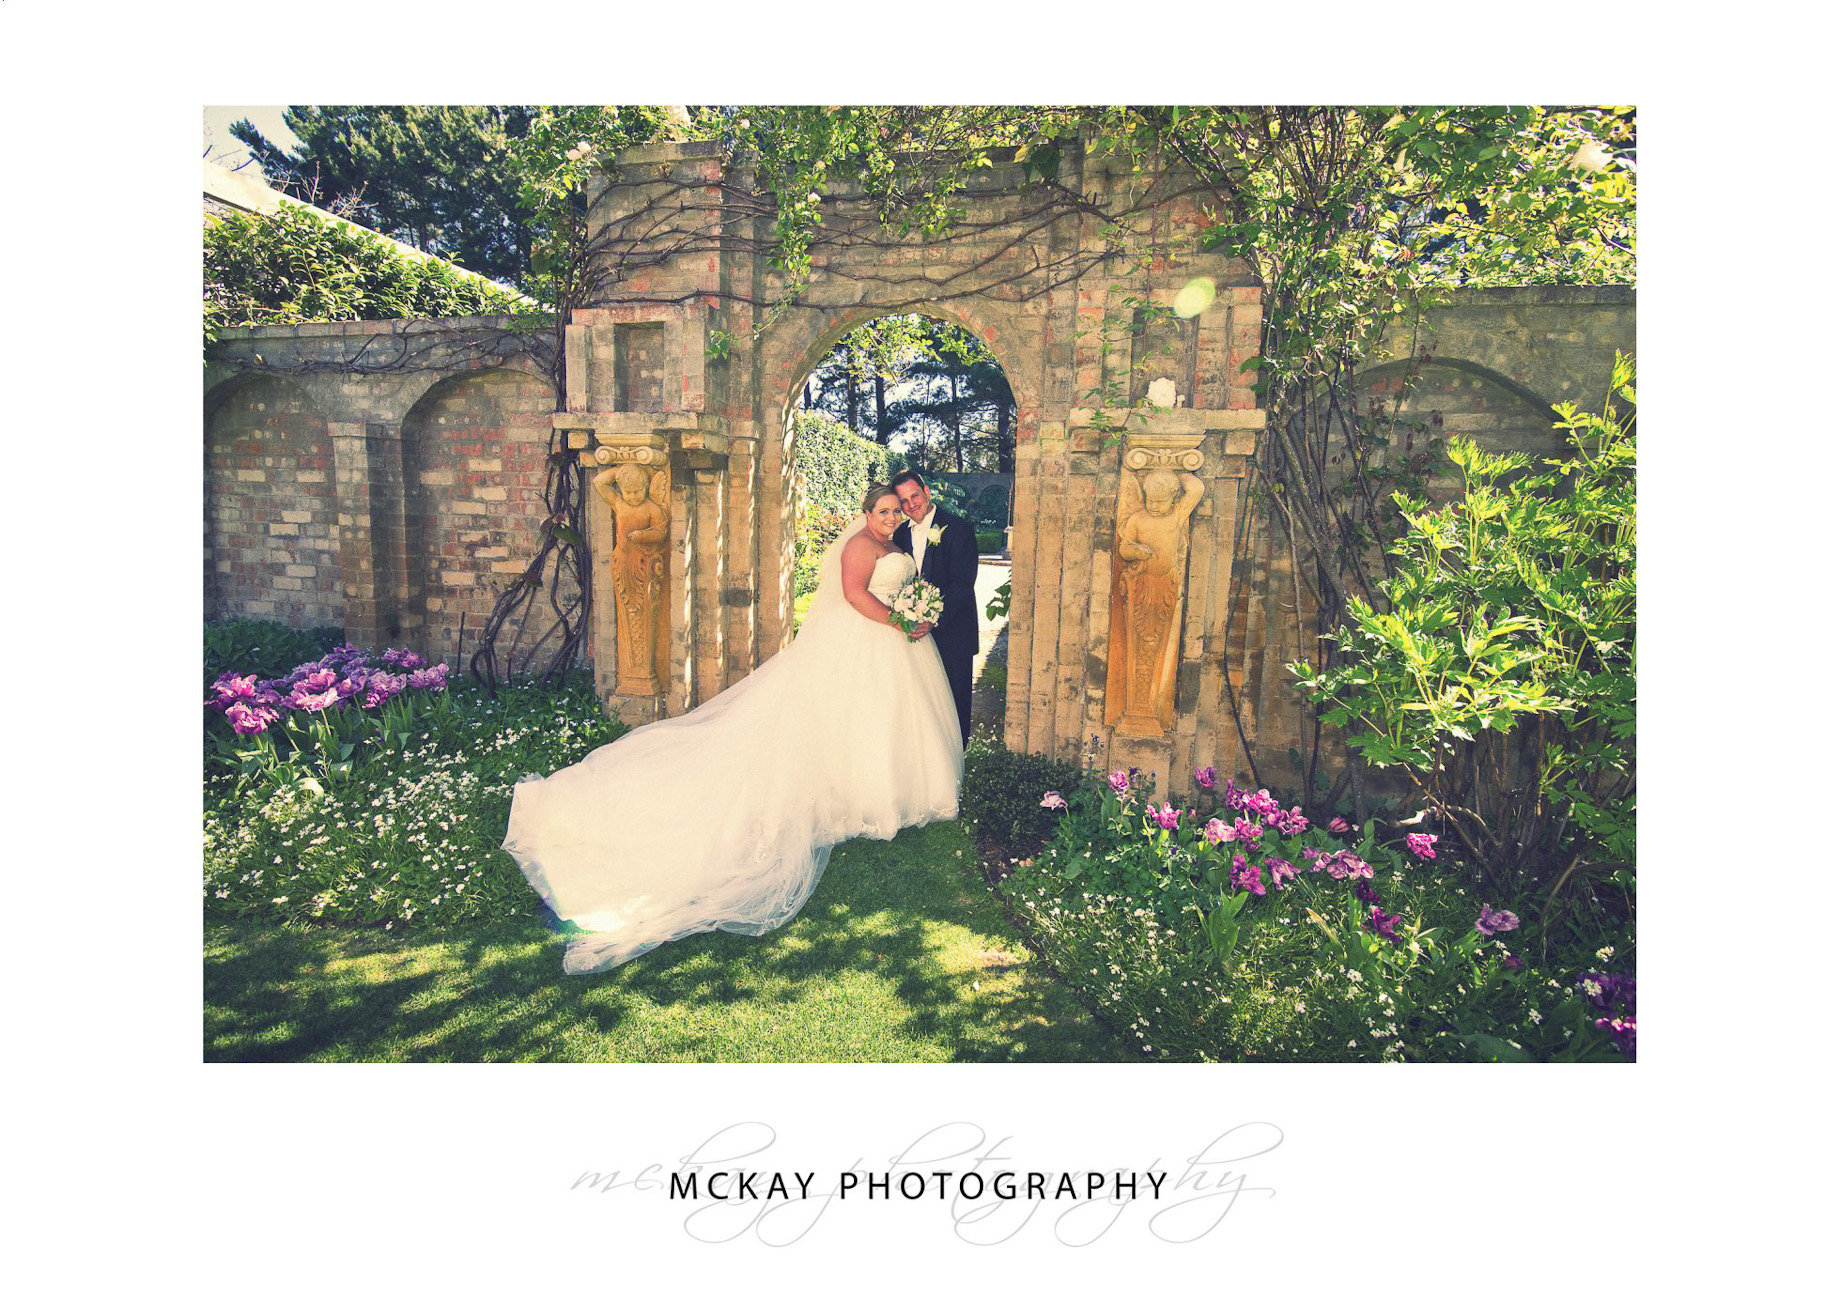 Wedding photo at Red Cow Farm in Sutton Forest